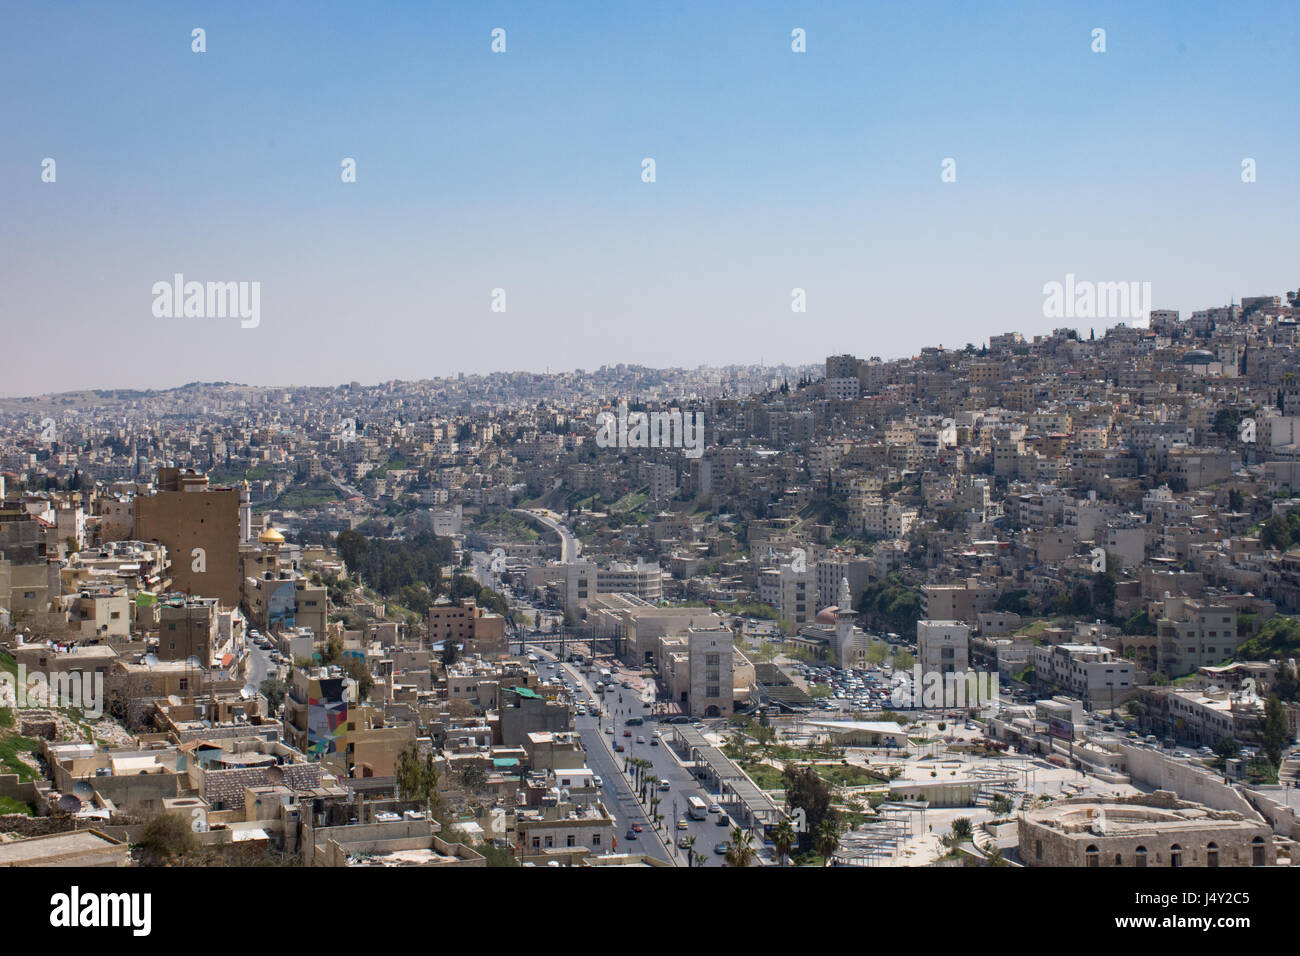 View of Amman's modern and older buildings including the Roman Theater below from the hill of Amman Citadel. - Stock Image